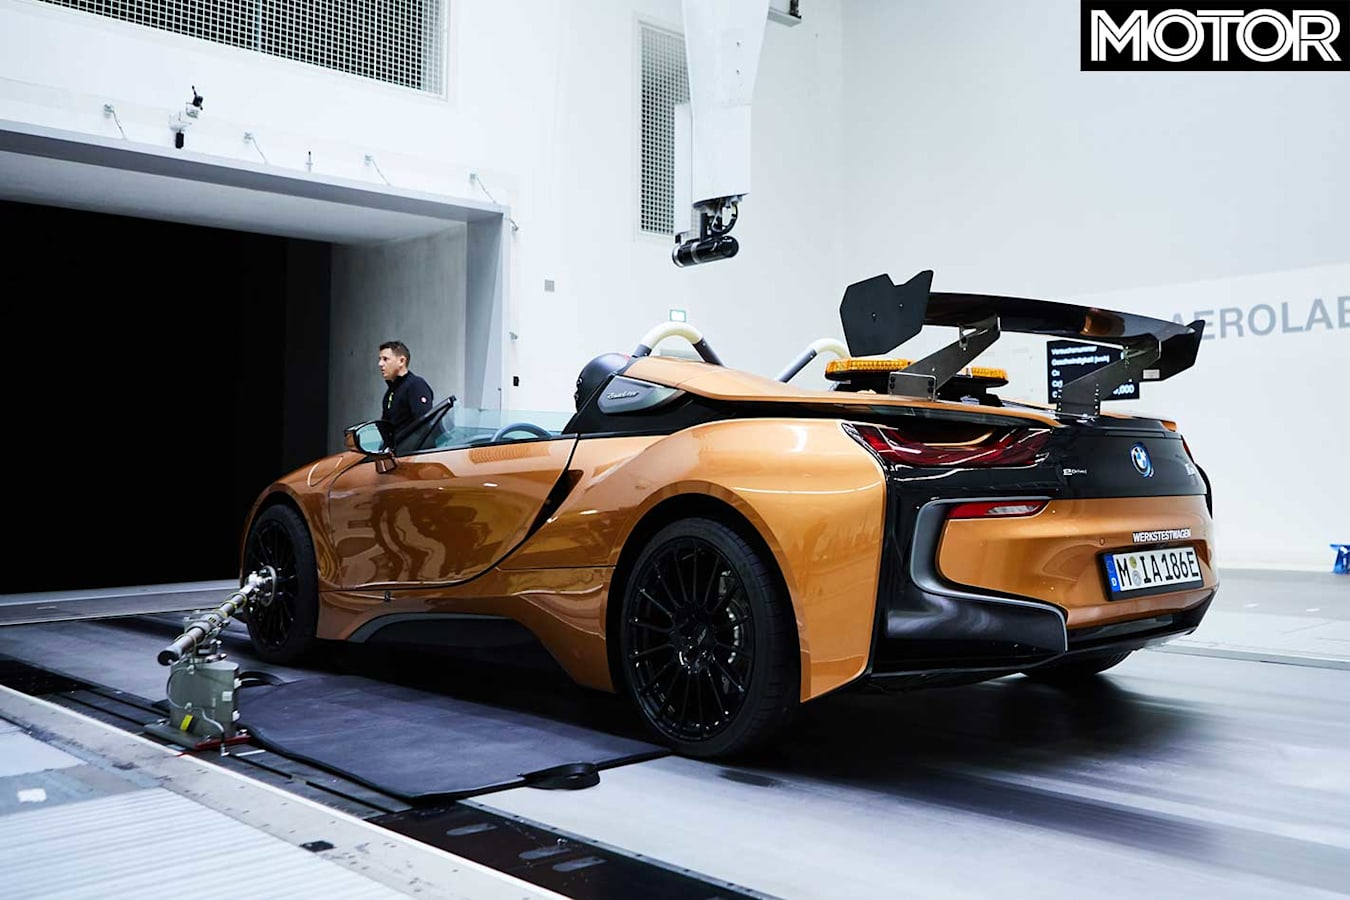 Modified BMW I 8 Roadster Formula E Safety Car Tail Wing Build Jpg